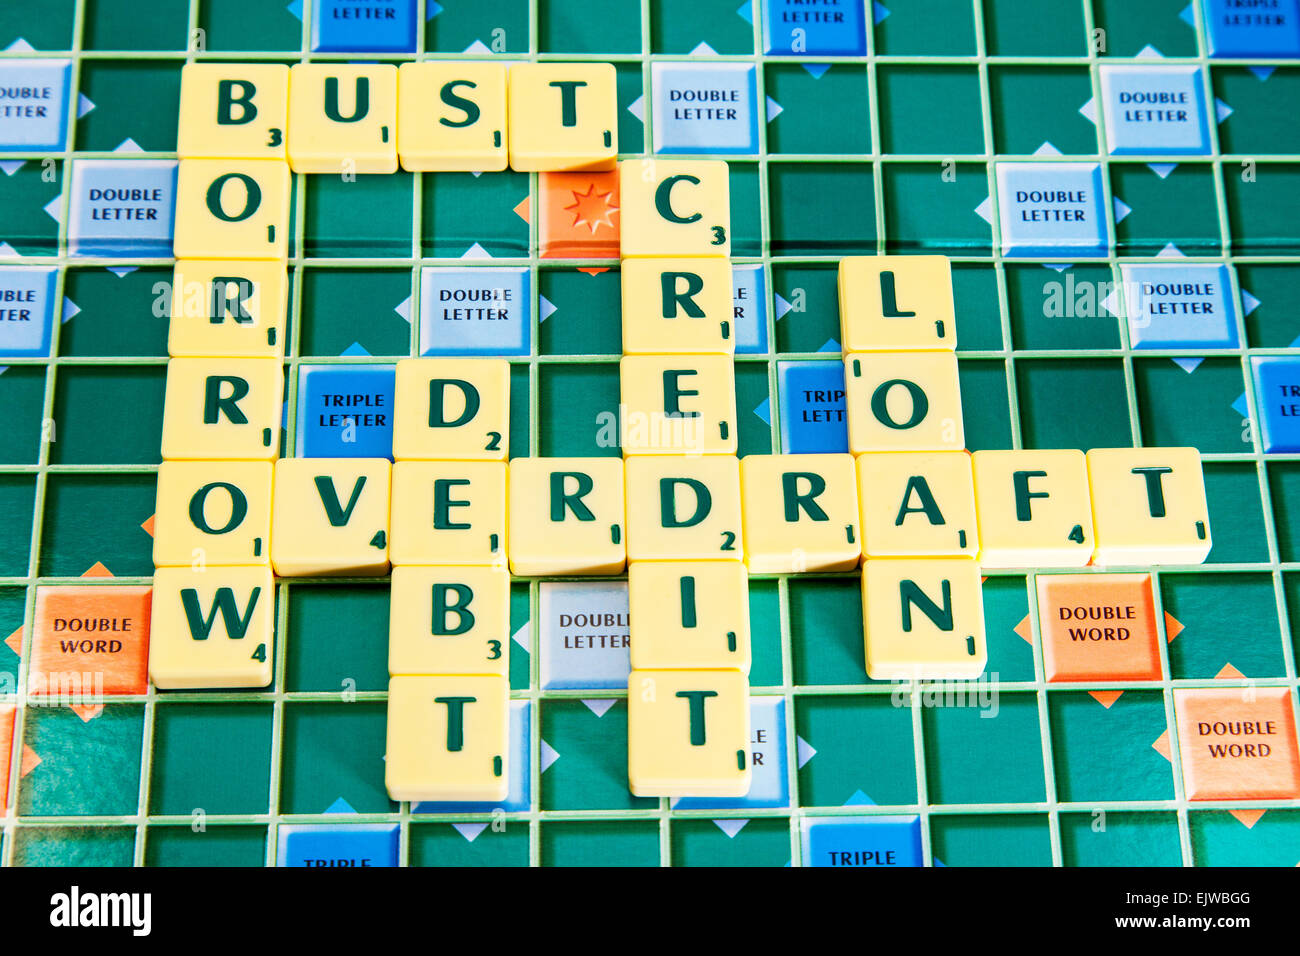 credit borrow overdraft debt bust loan loans bank money cards apr % rate words using scrabble tiles to spell out - Stock Image